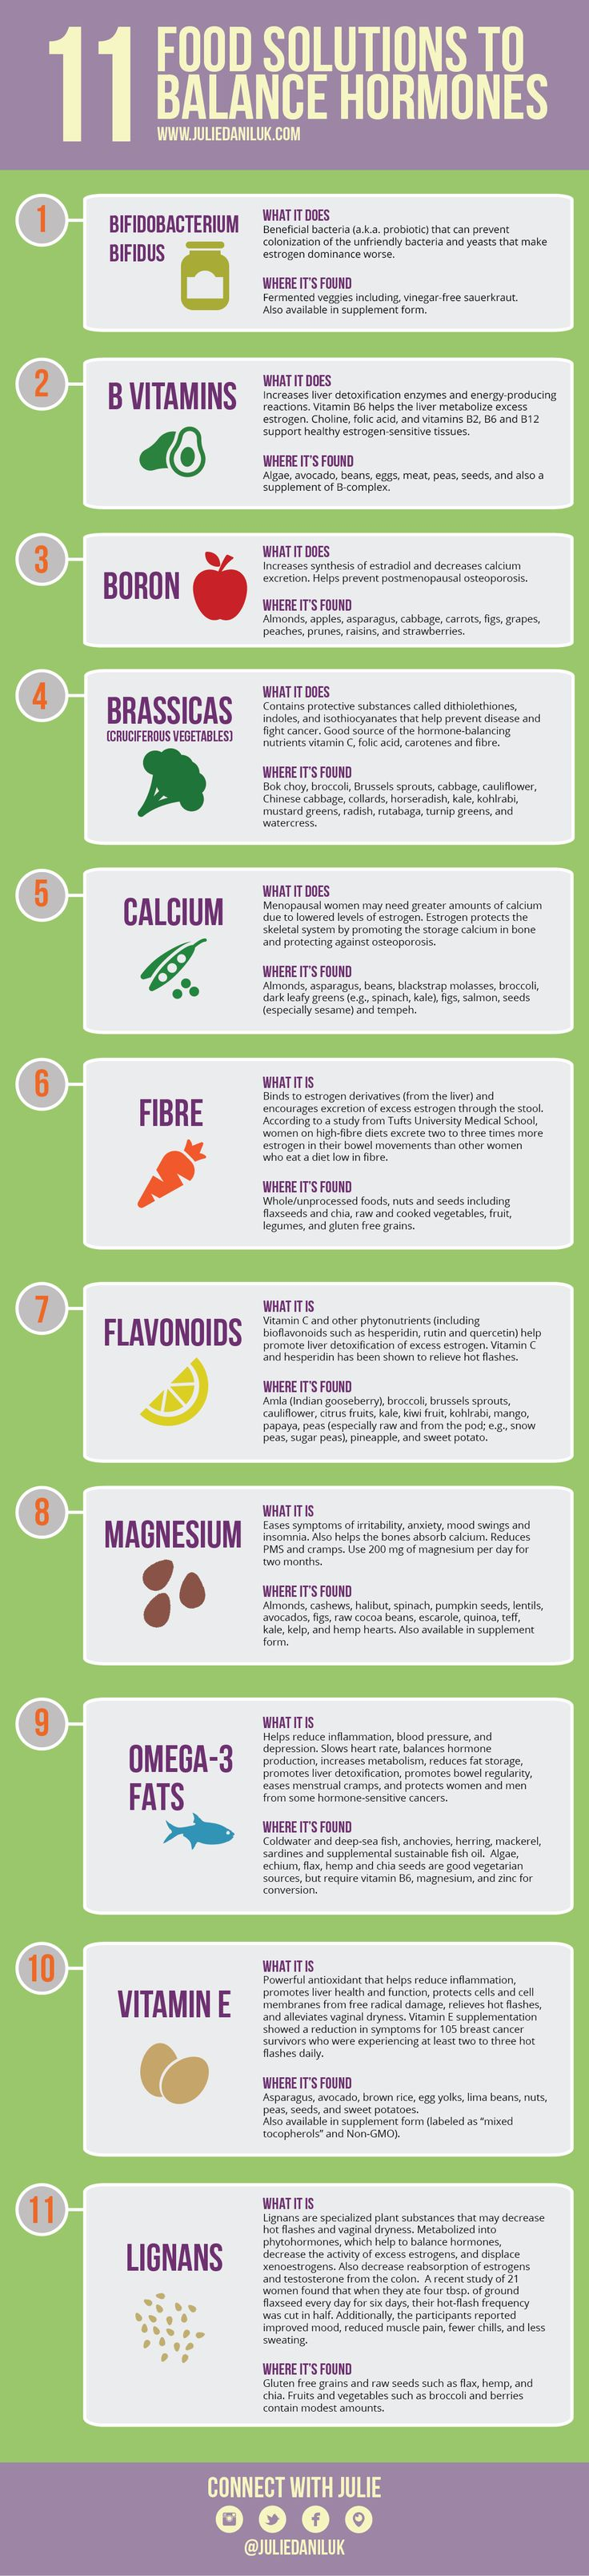 11 Food Solutions To Balance Your Hormones Infographic - Julie Daniluk